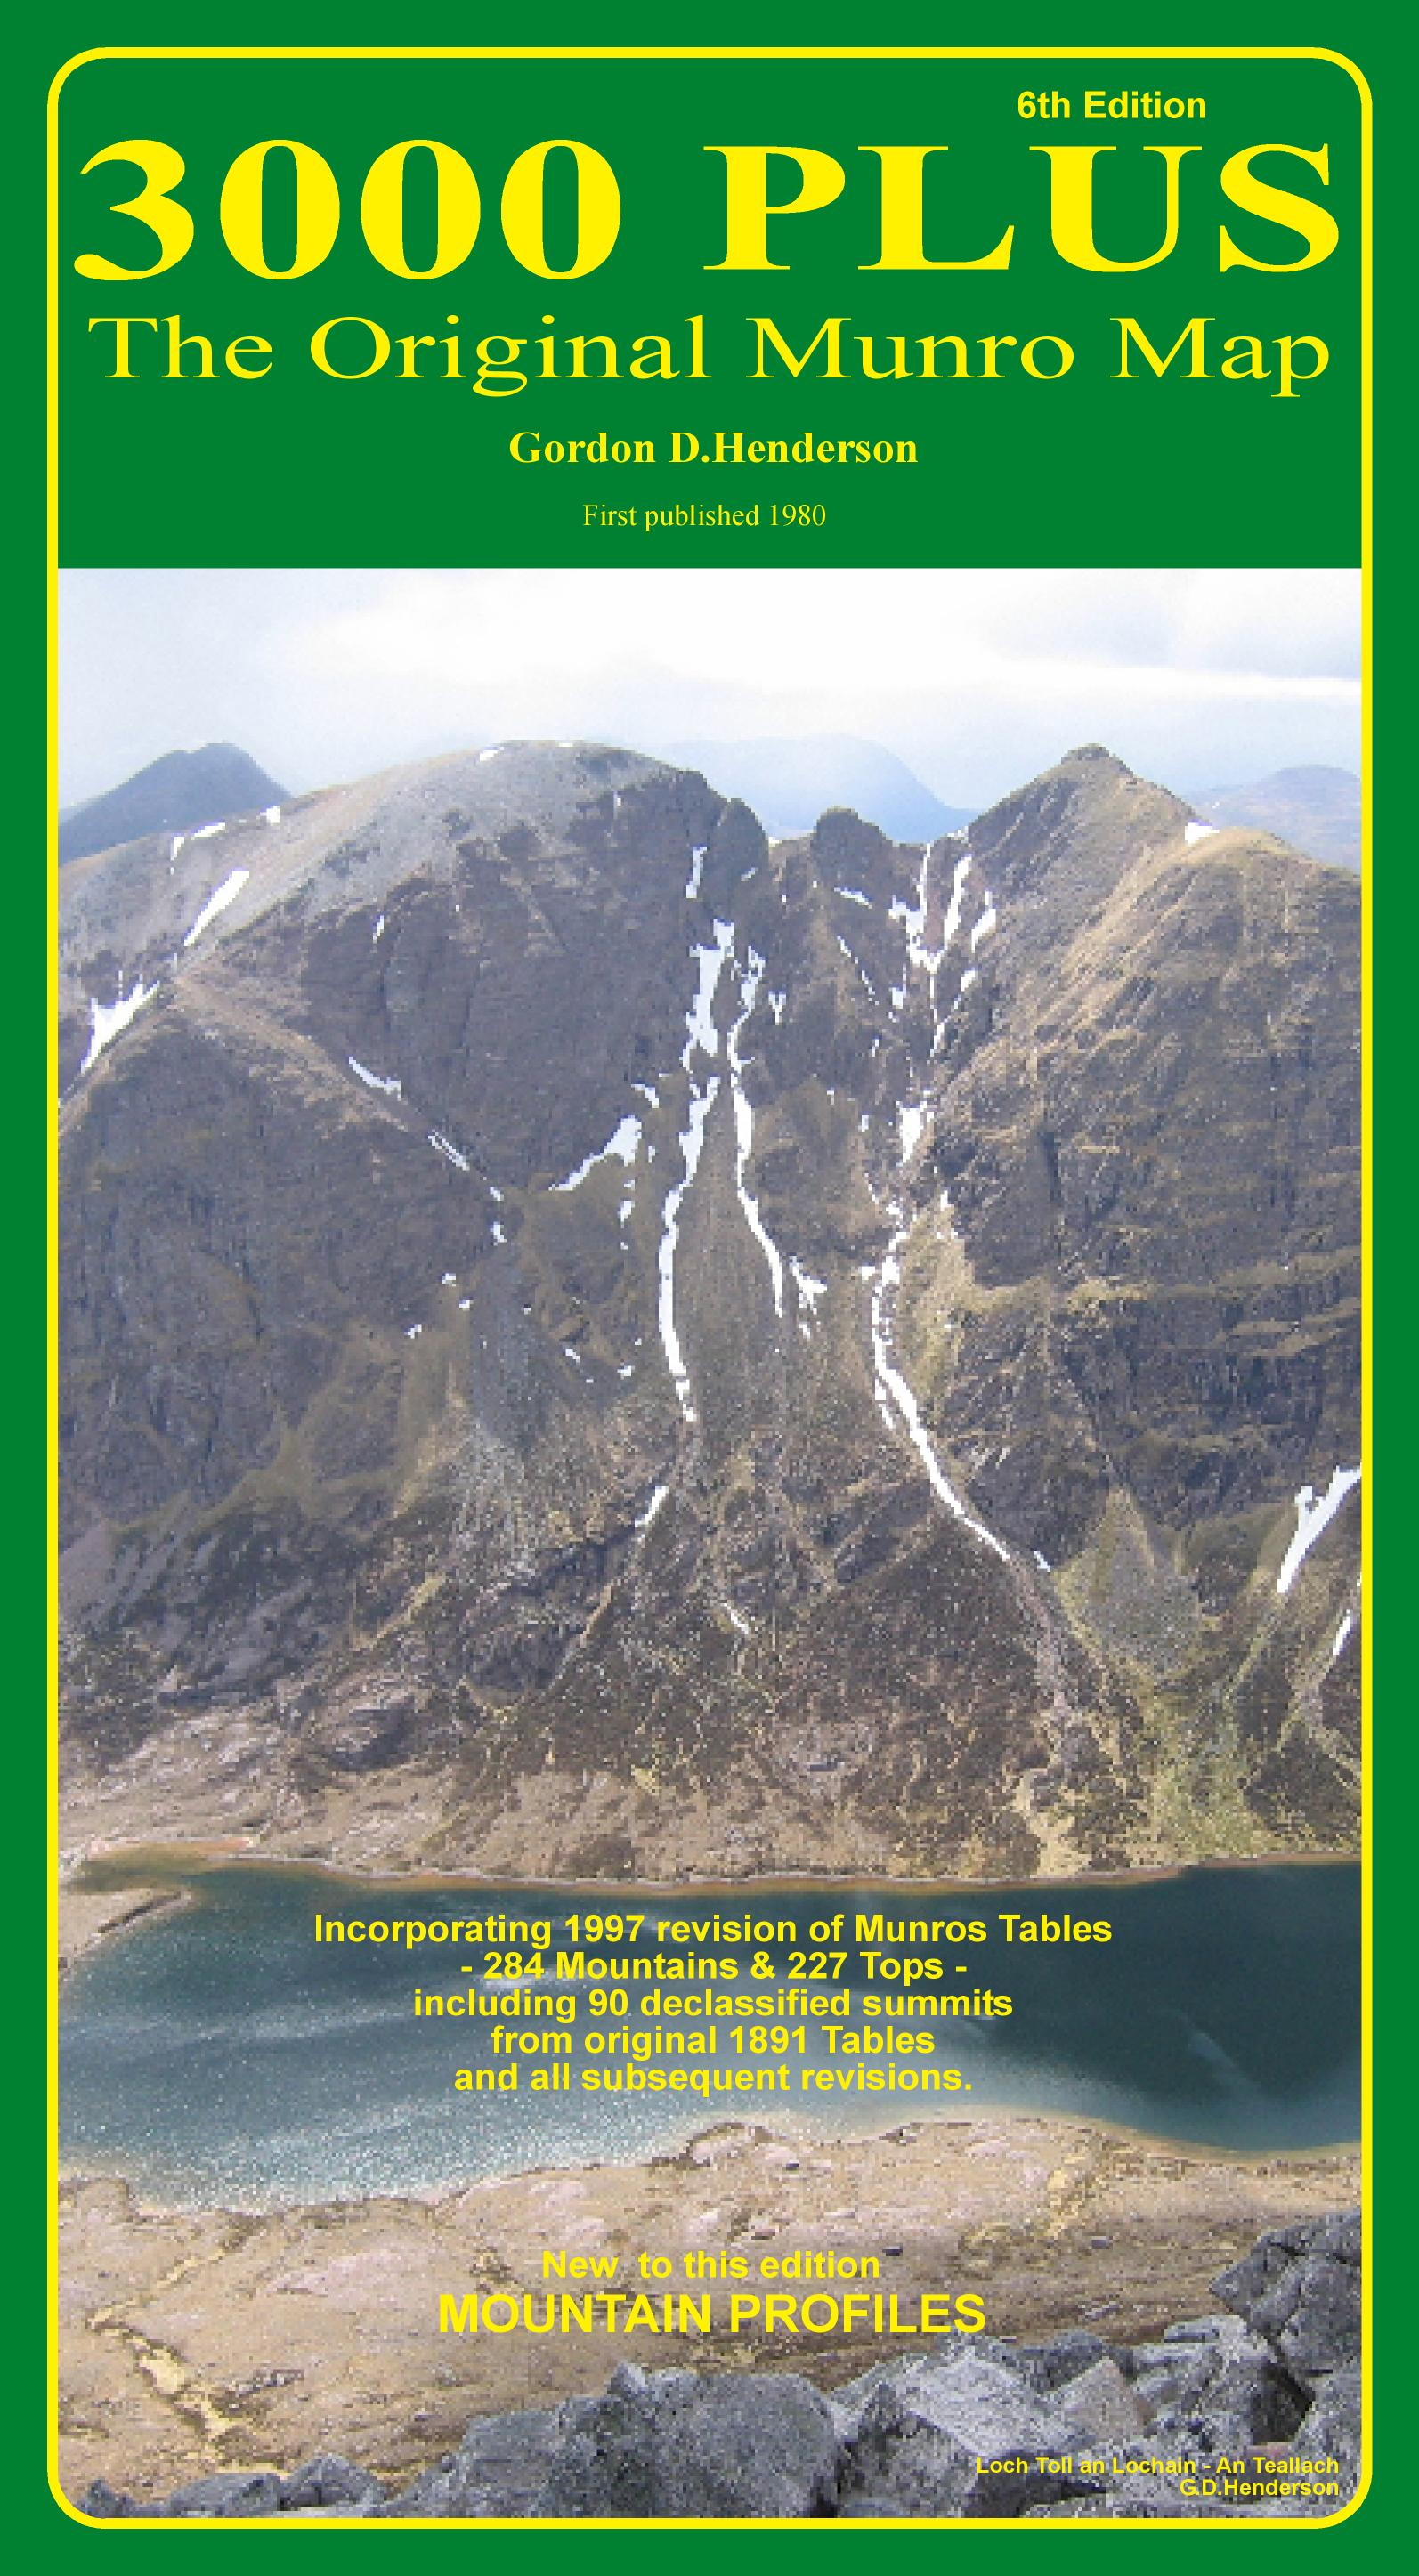 Front cover of 3000 PLUS - The Original Munro Map. View of Loch Toll an Lochan - An Teallach